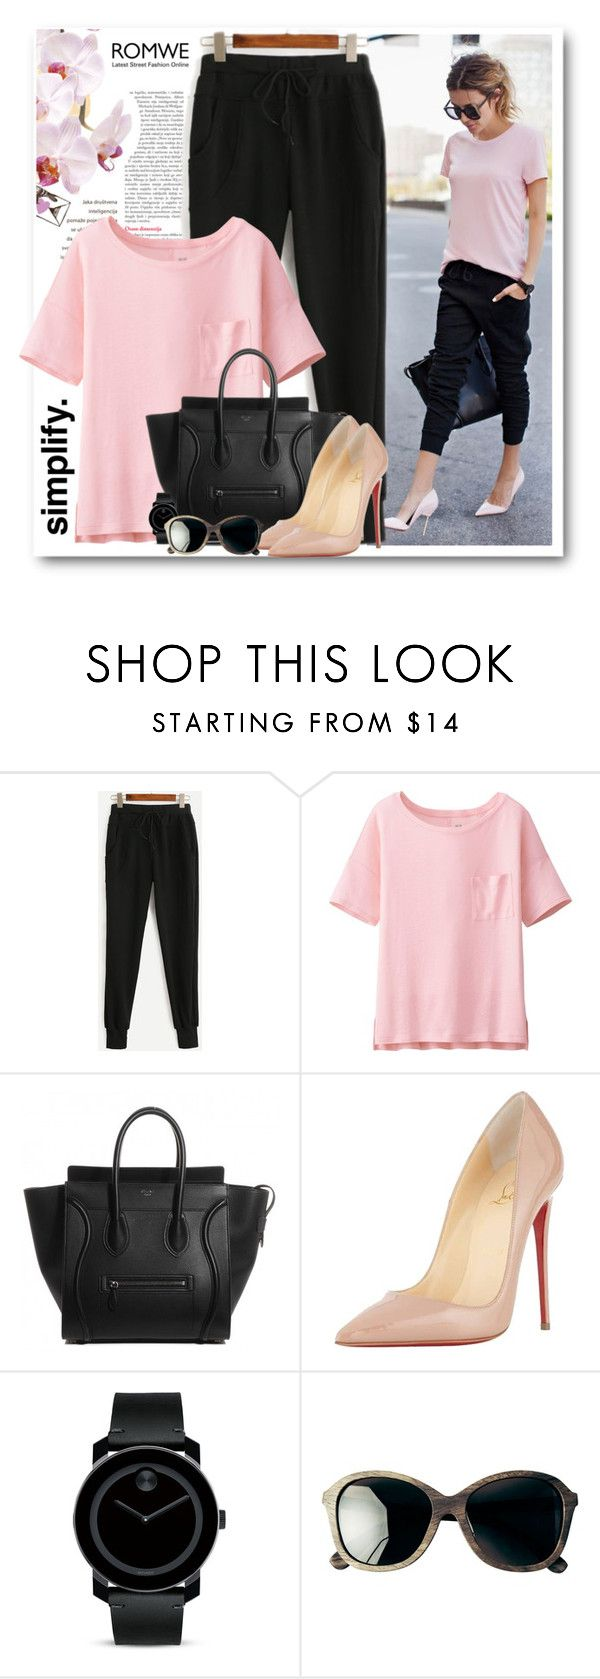 """""""Black Drawstring Waist Pants ROMWE"""" by bmaroso ❤ liked on Polyvore featuring Uniqlo, Christian Louboutin, Movado and Toast"""